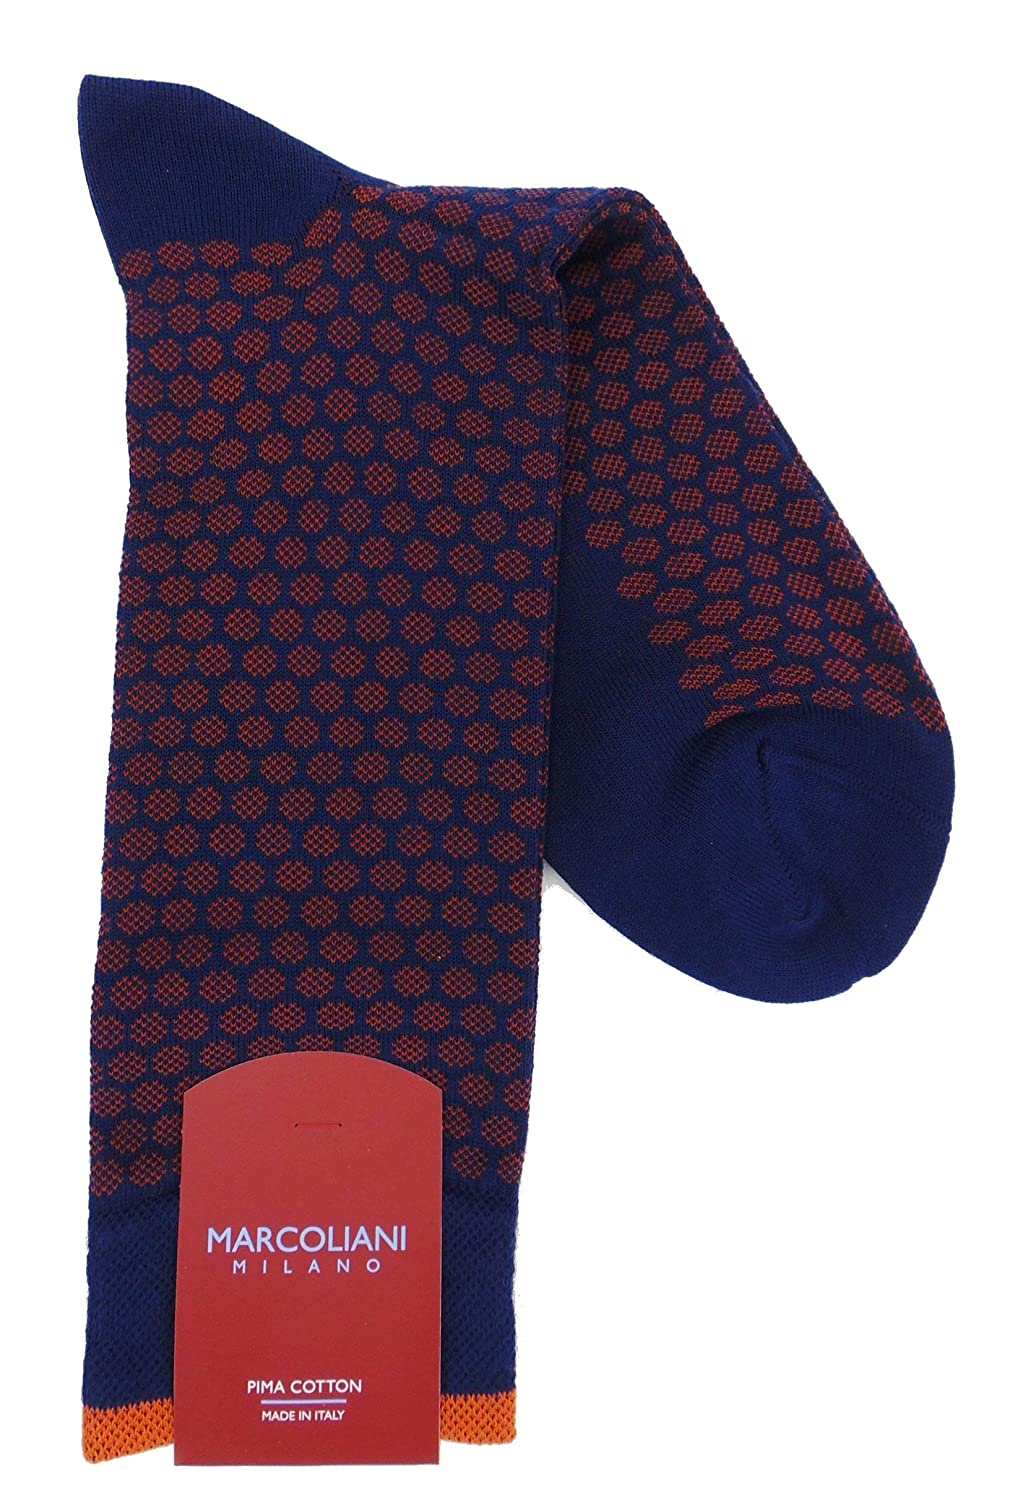 Marcoliani Milano Mens Mid Calf Jacquard Dots Pima Cotton Socks